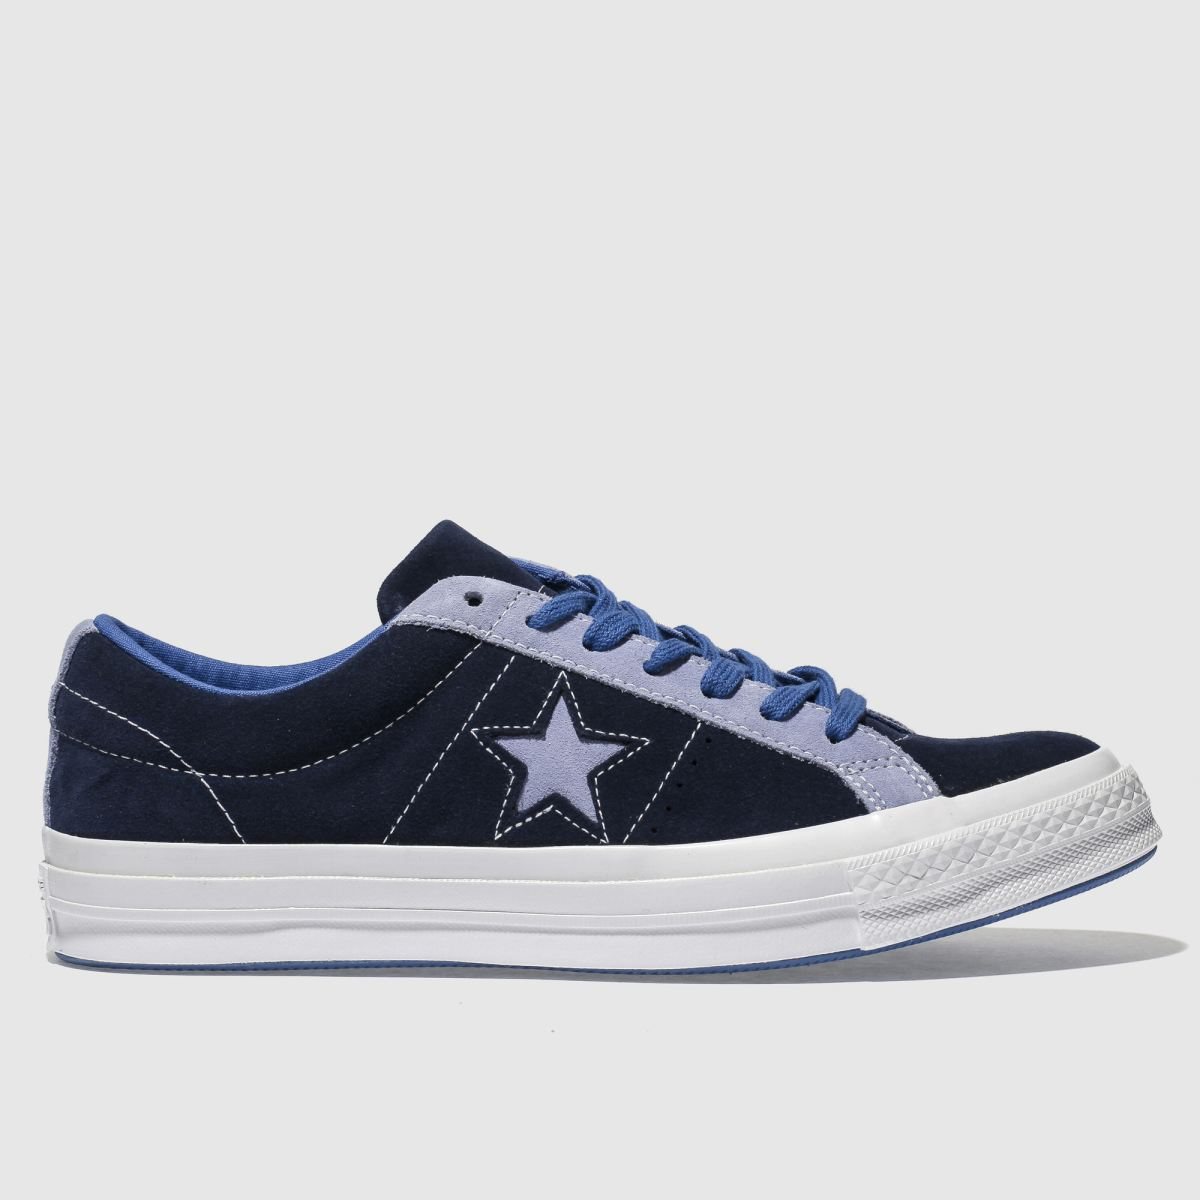 Converse Navy & Pl Blue One Star Ox Trainers